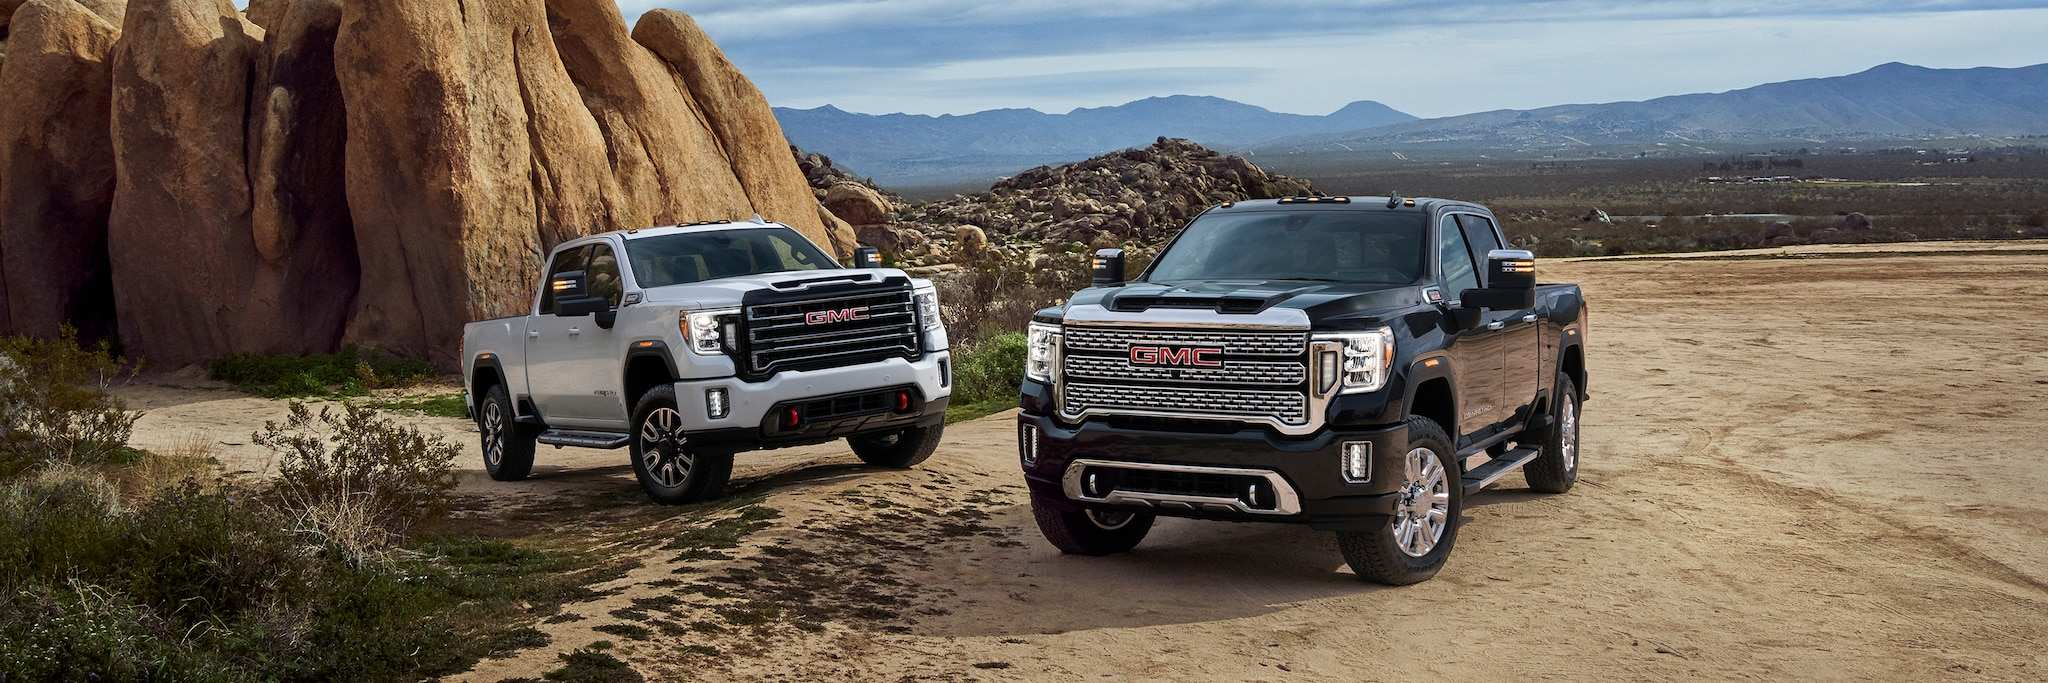 36 Best Review 2020 Gmc Sierra 2500 Engine Options Price with 2020 Gmc Sierra 2500 Engine Options